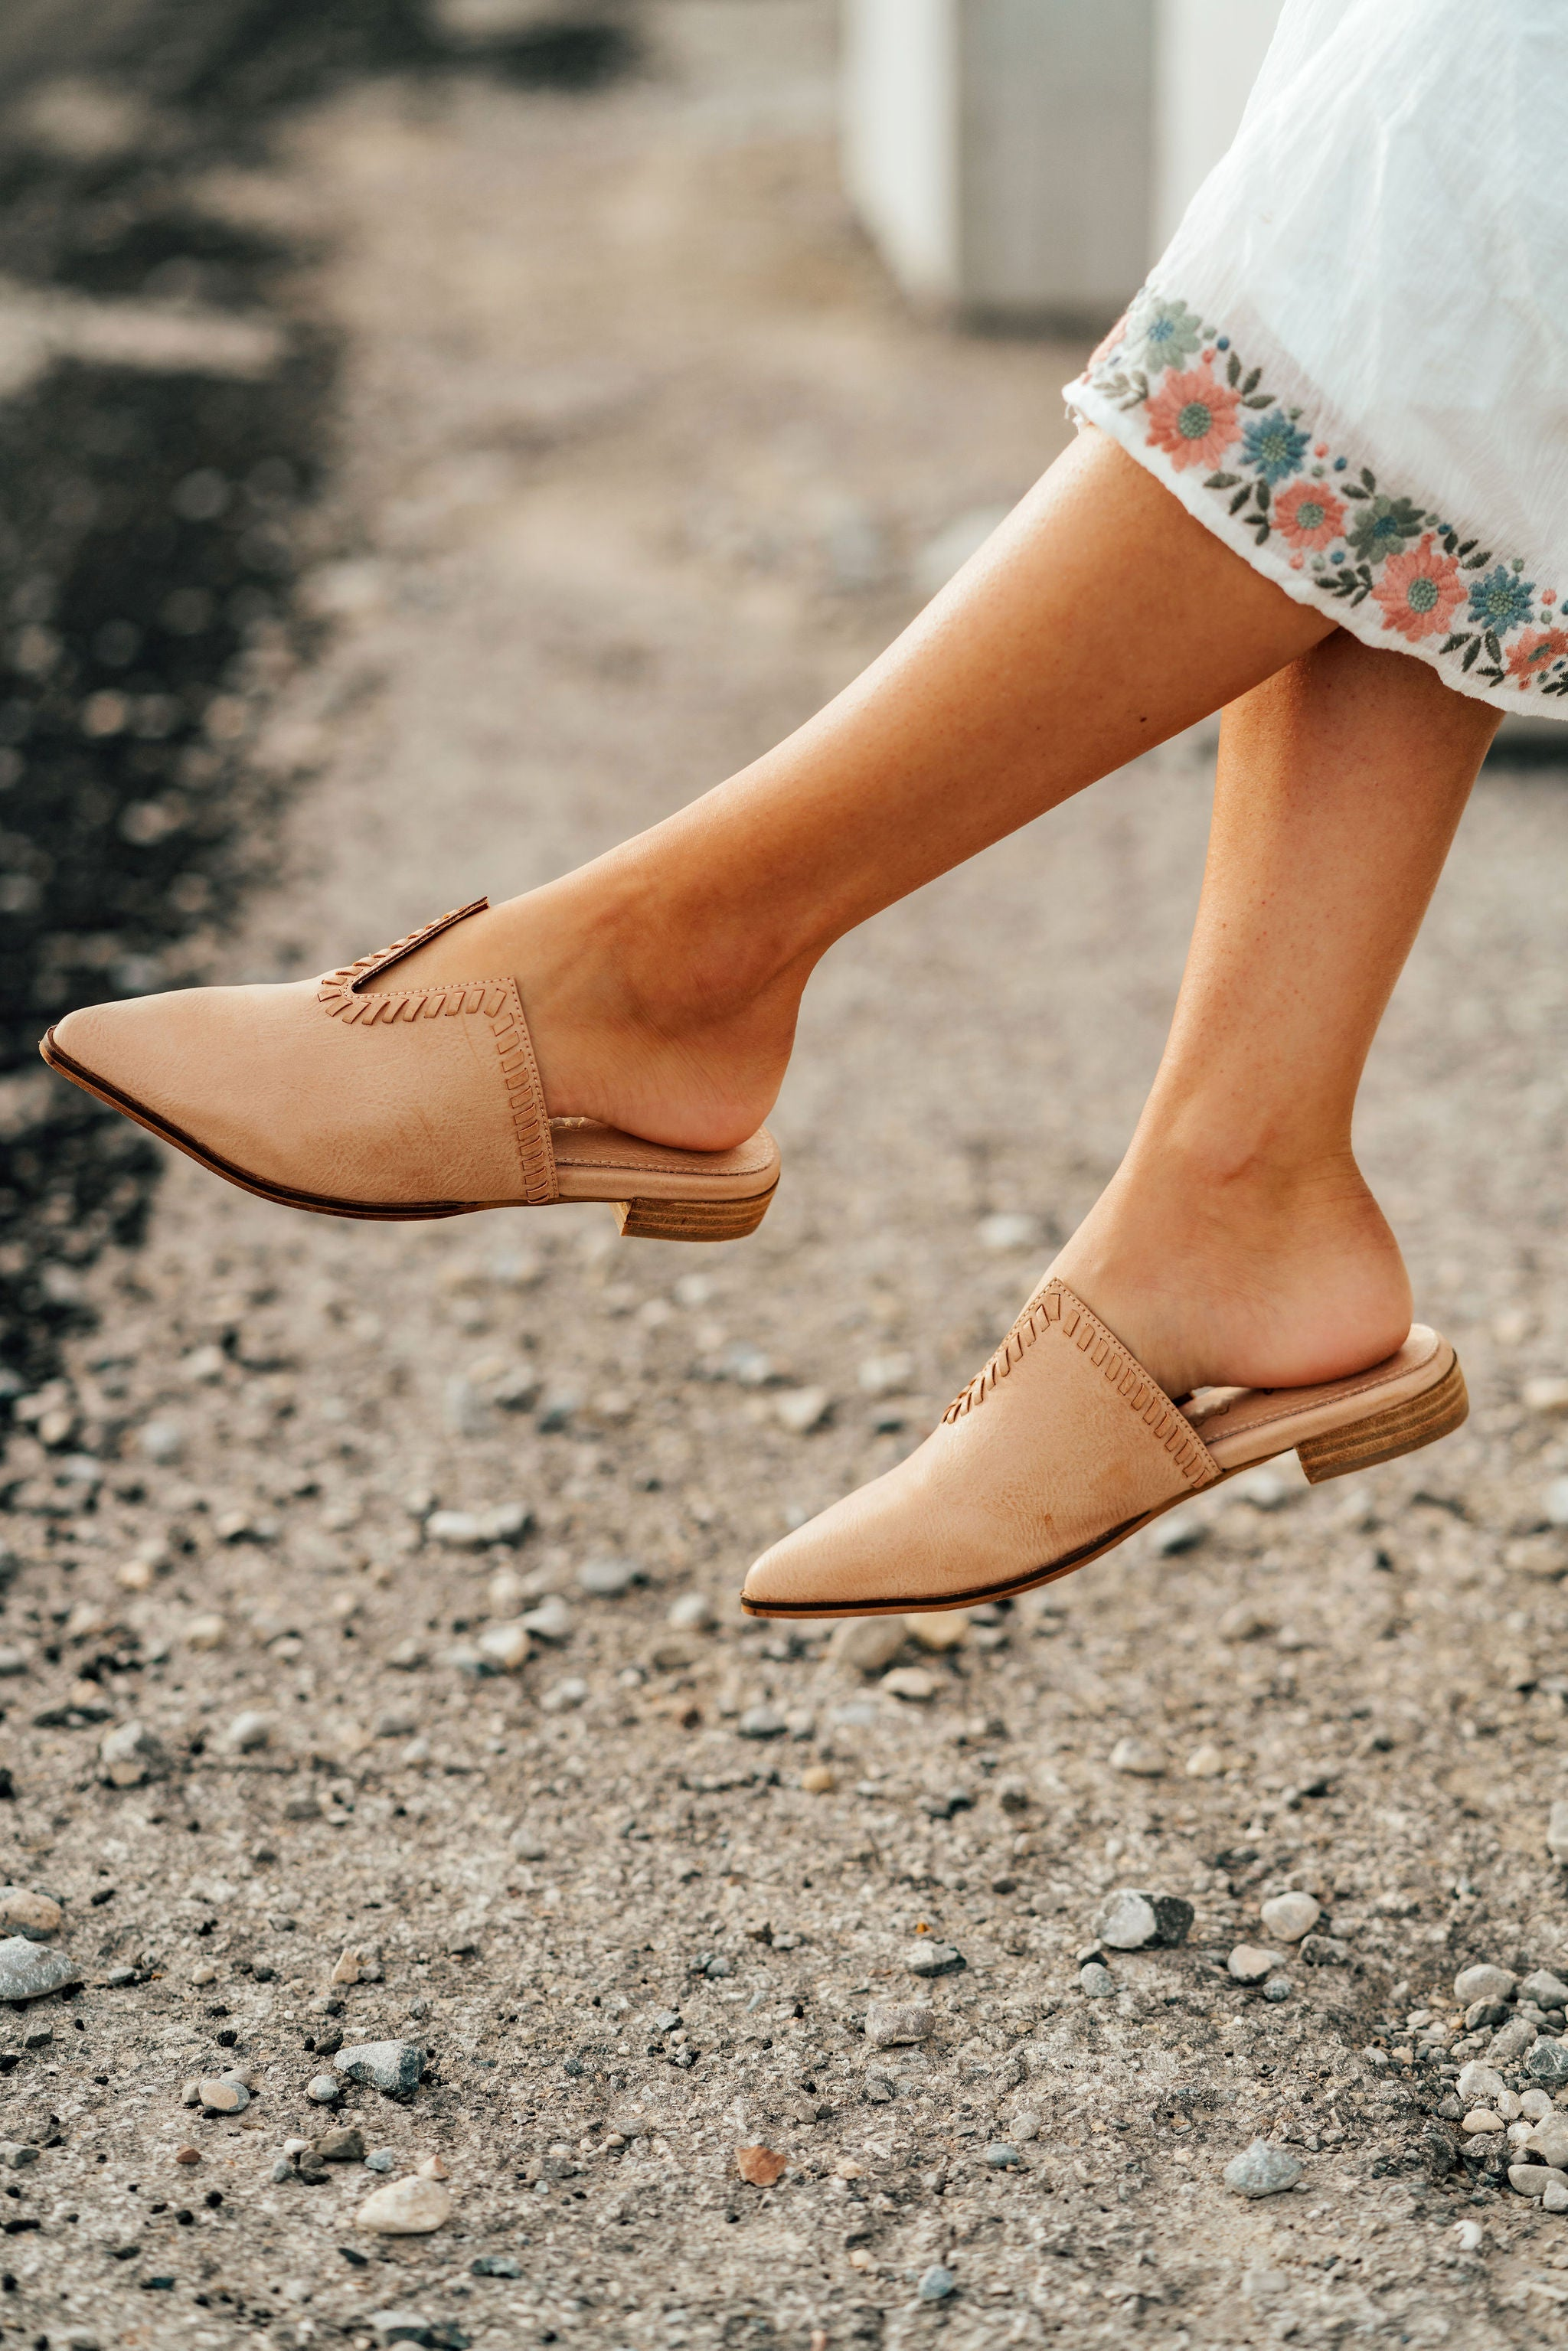 AL CARRAWAY X PINK DESERT - THE SOPHIA MULE IN ROSE